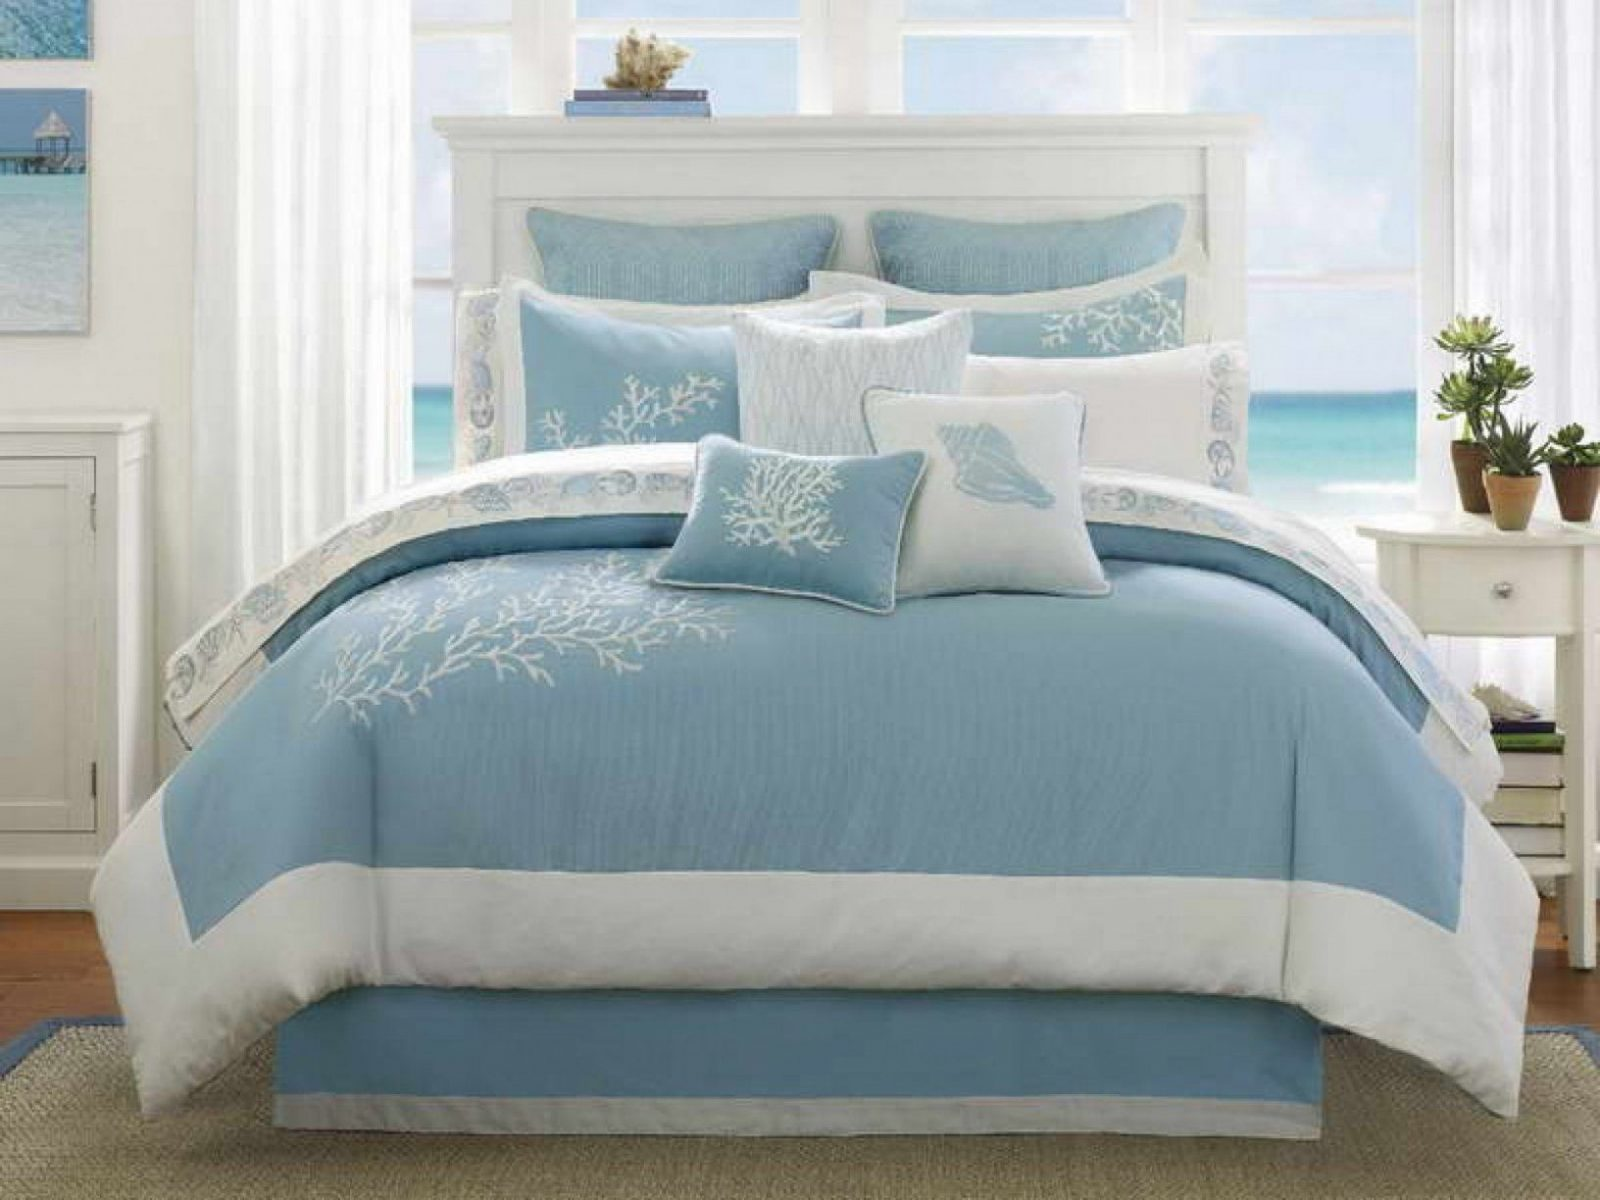 Blue And White Bedding Sets With Rectangle Bed Having High Headboard von Beach Themed Bedding For Adults Bild